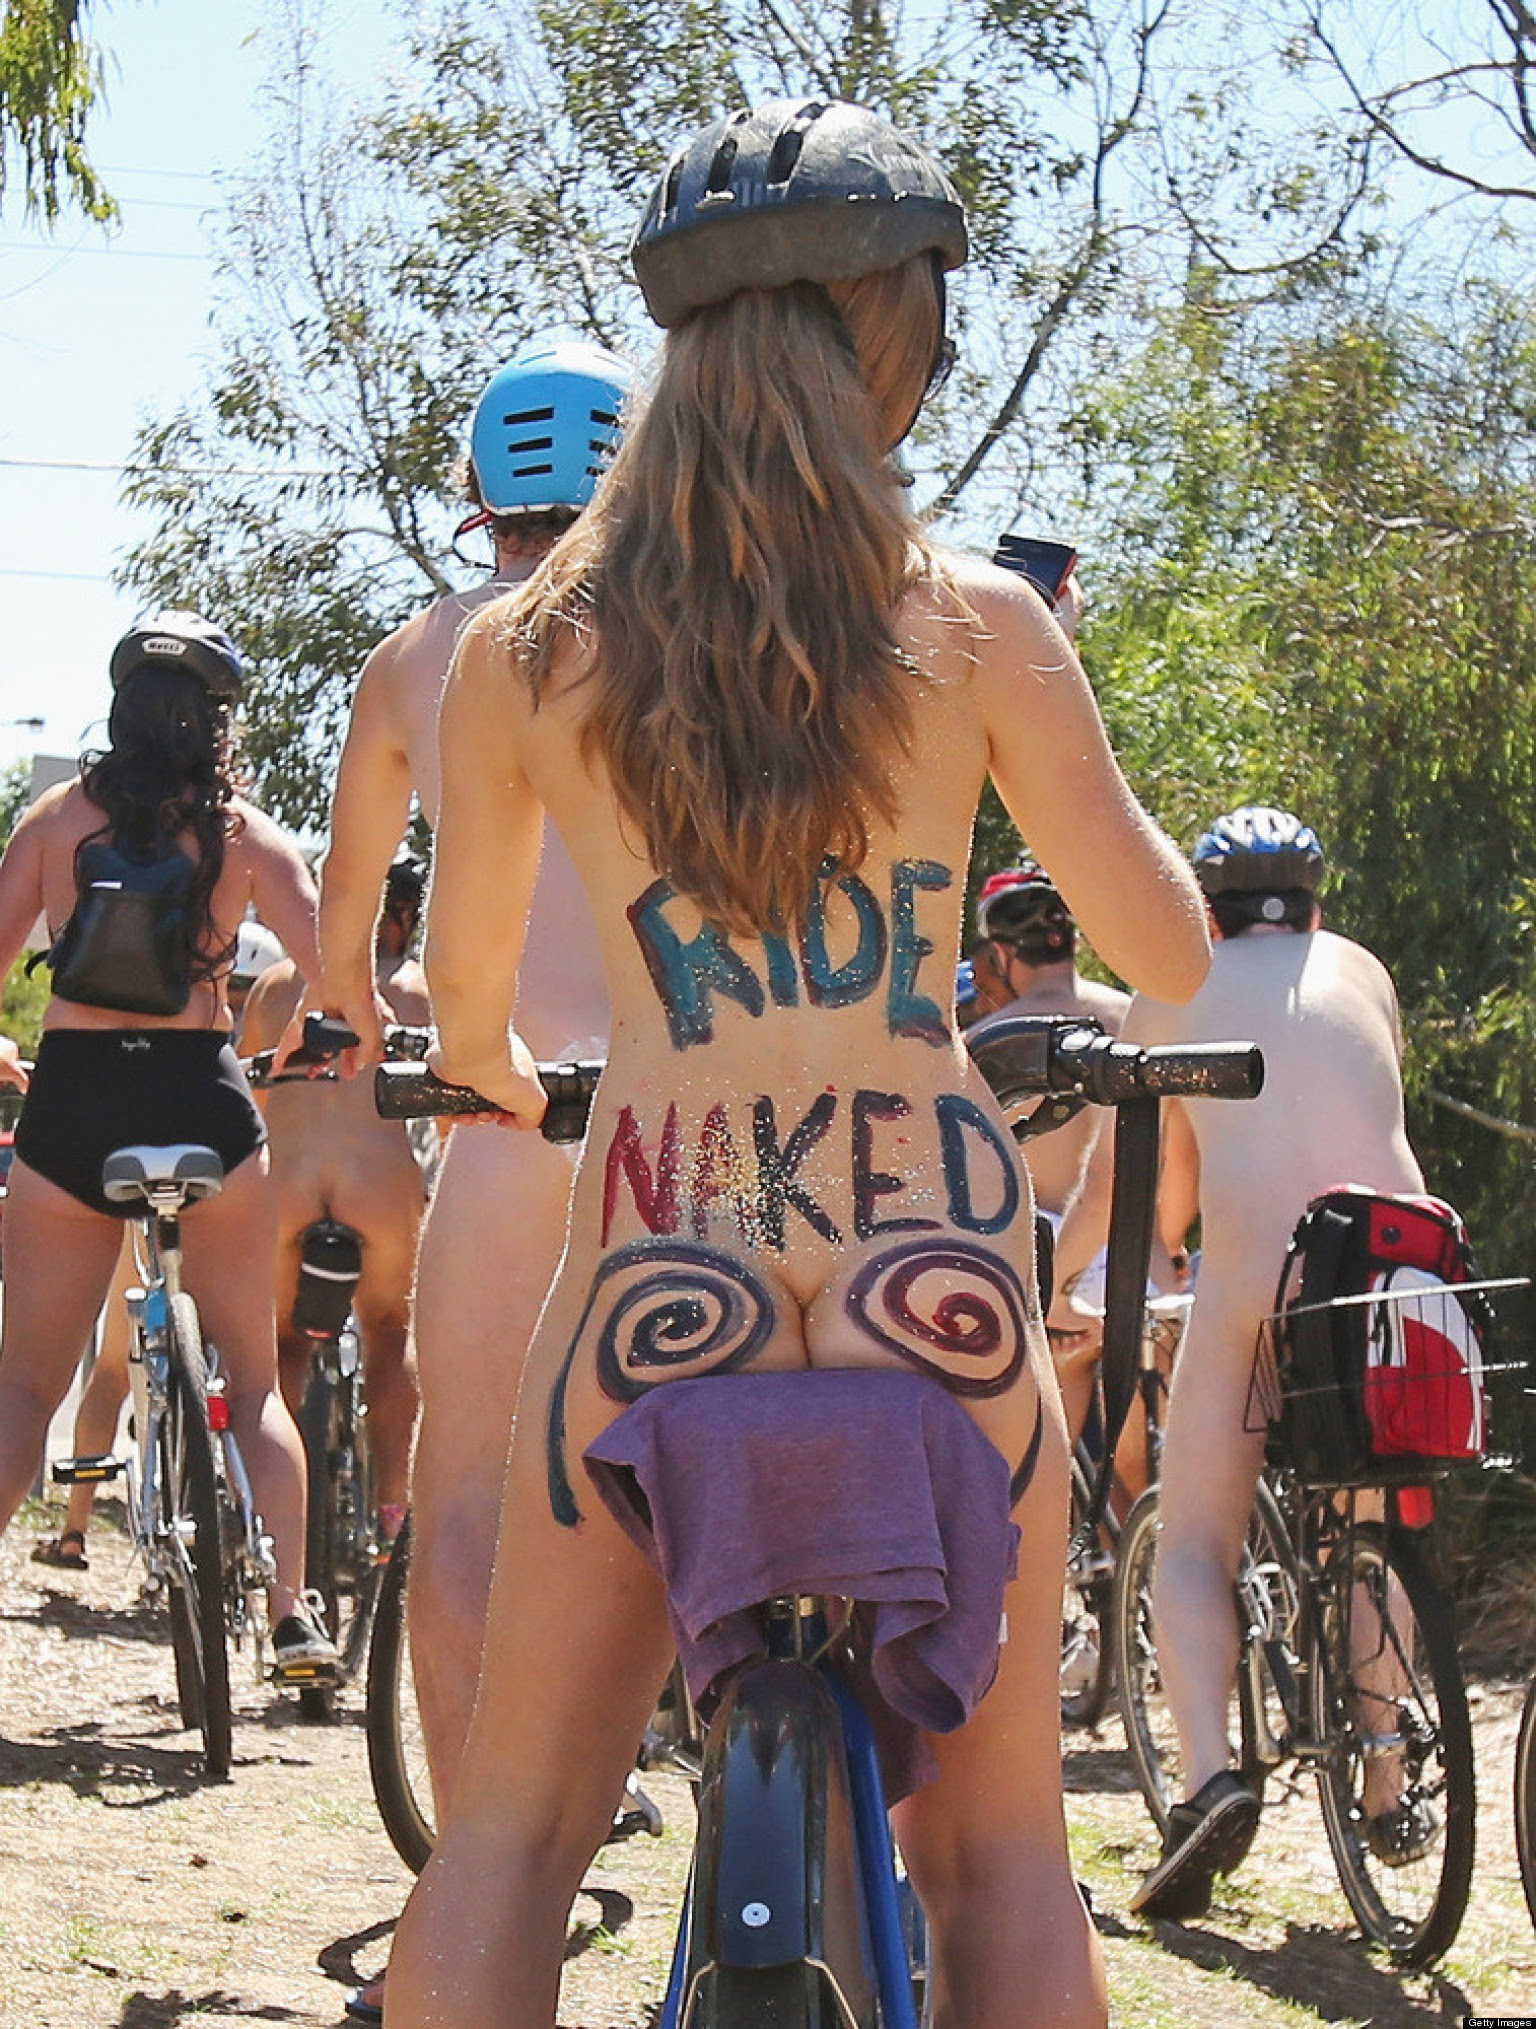 http://i.huffpost.com/gen/1023856/images/o-NAKED-BIKE-RIDE-facebook.jpg